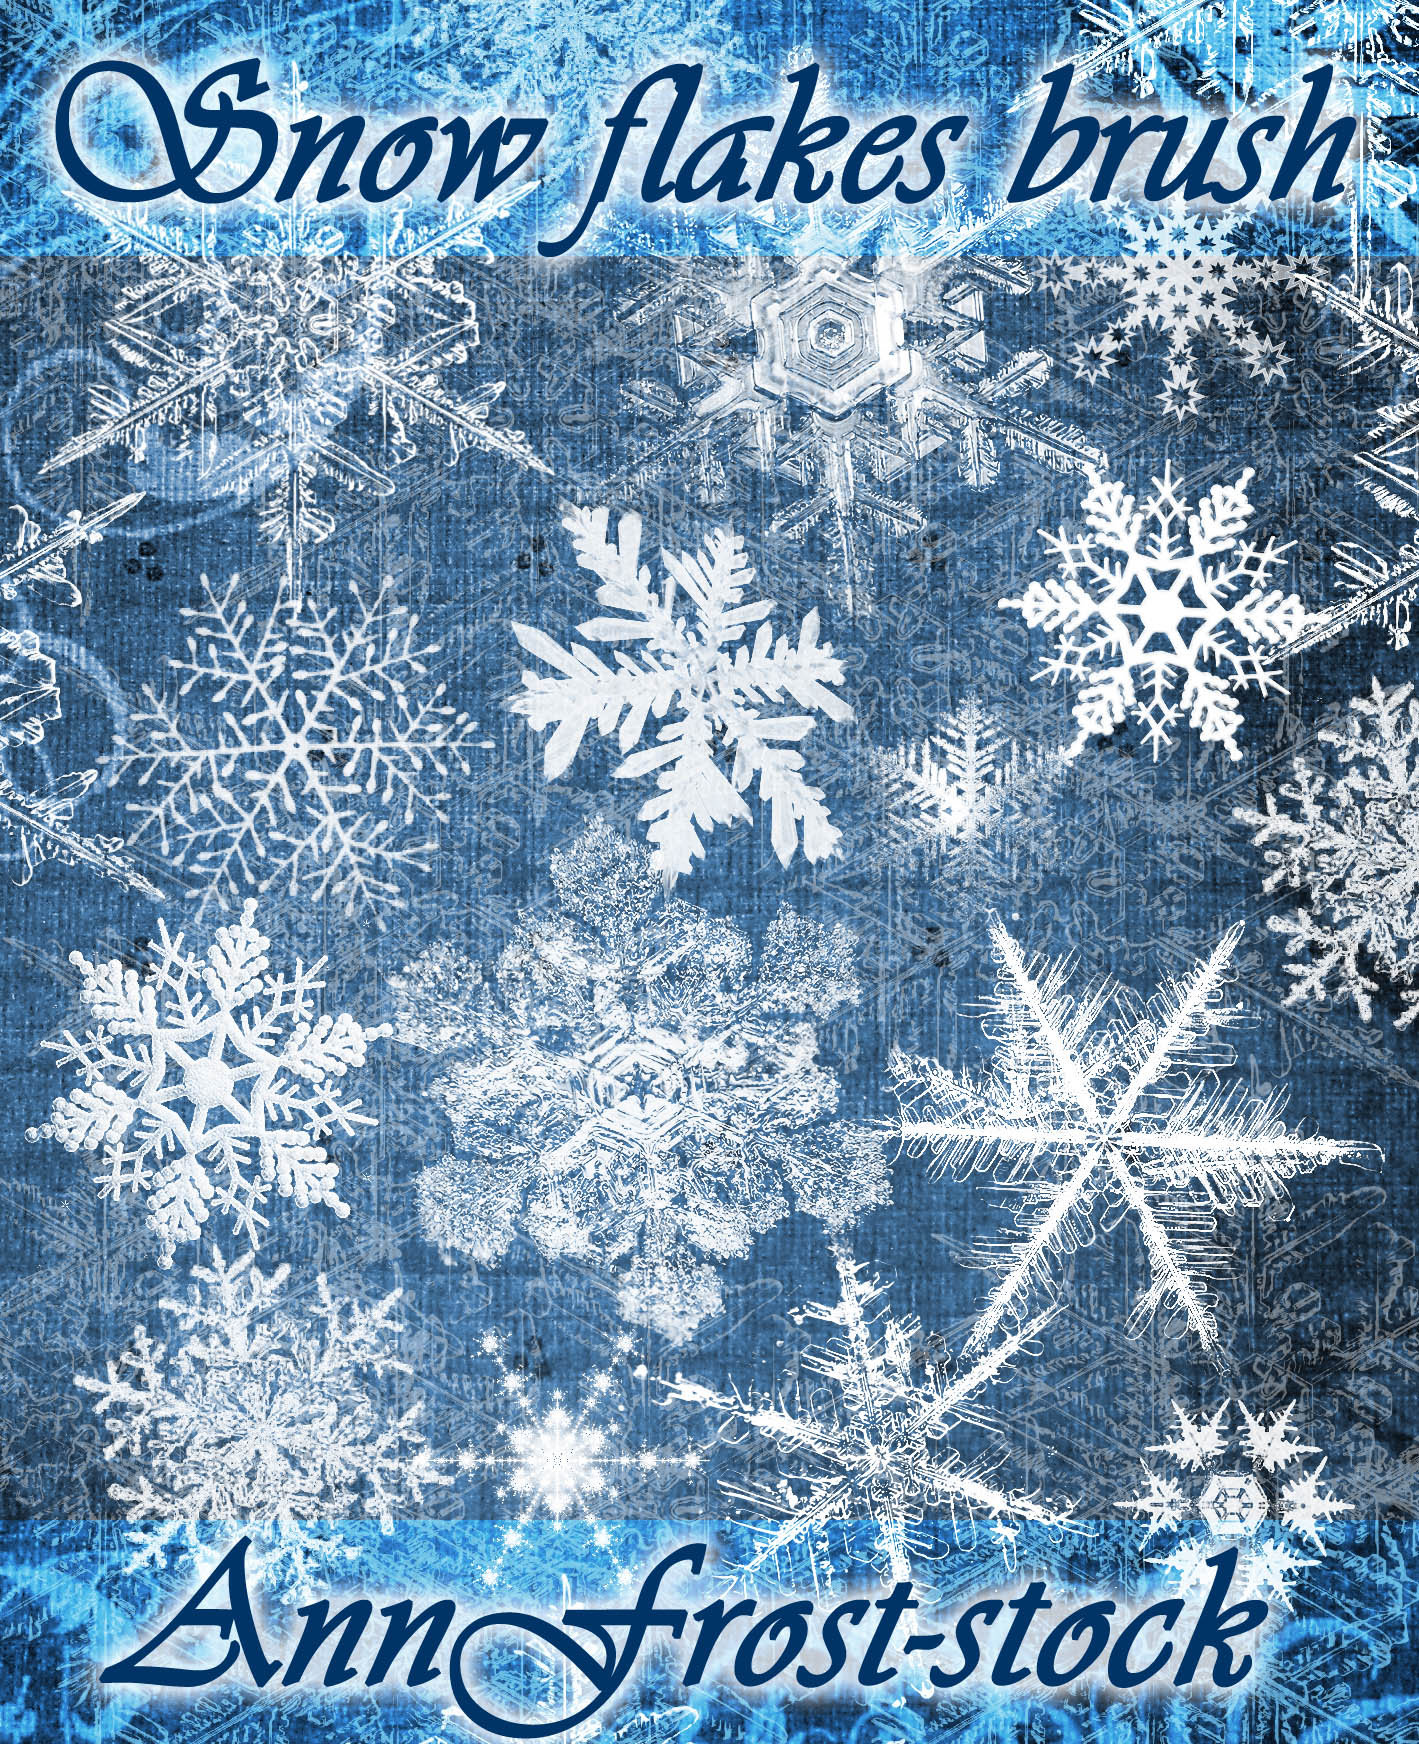 snow_flakes_brush_by_annfrost_stock